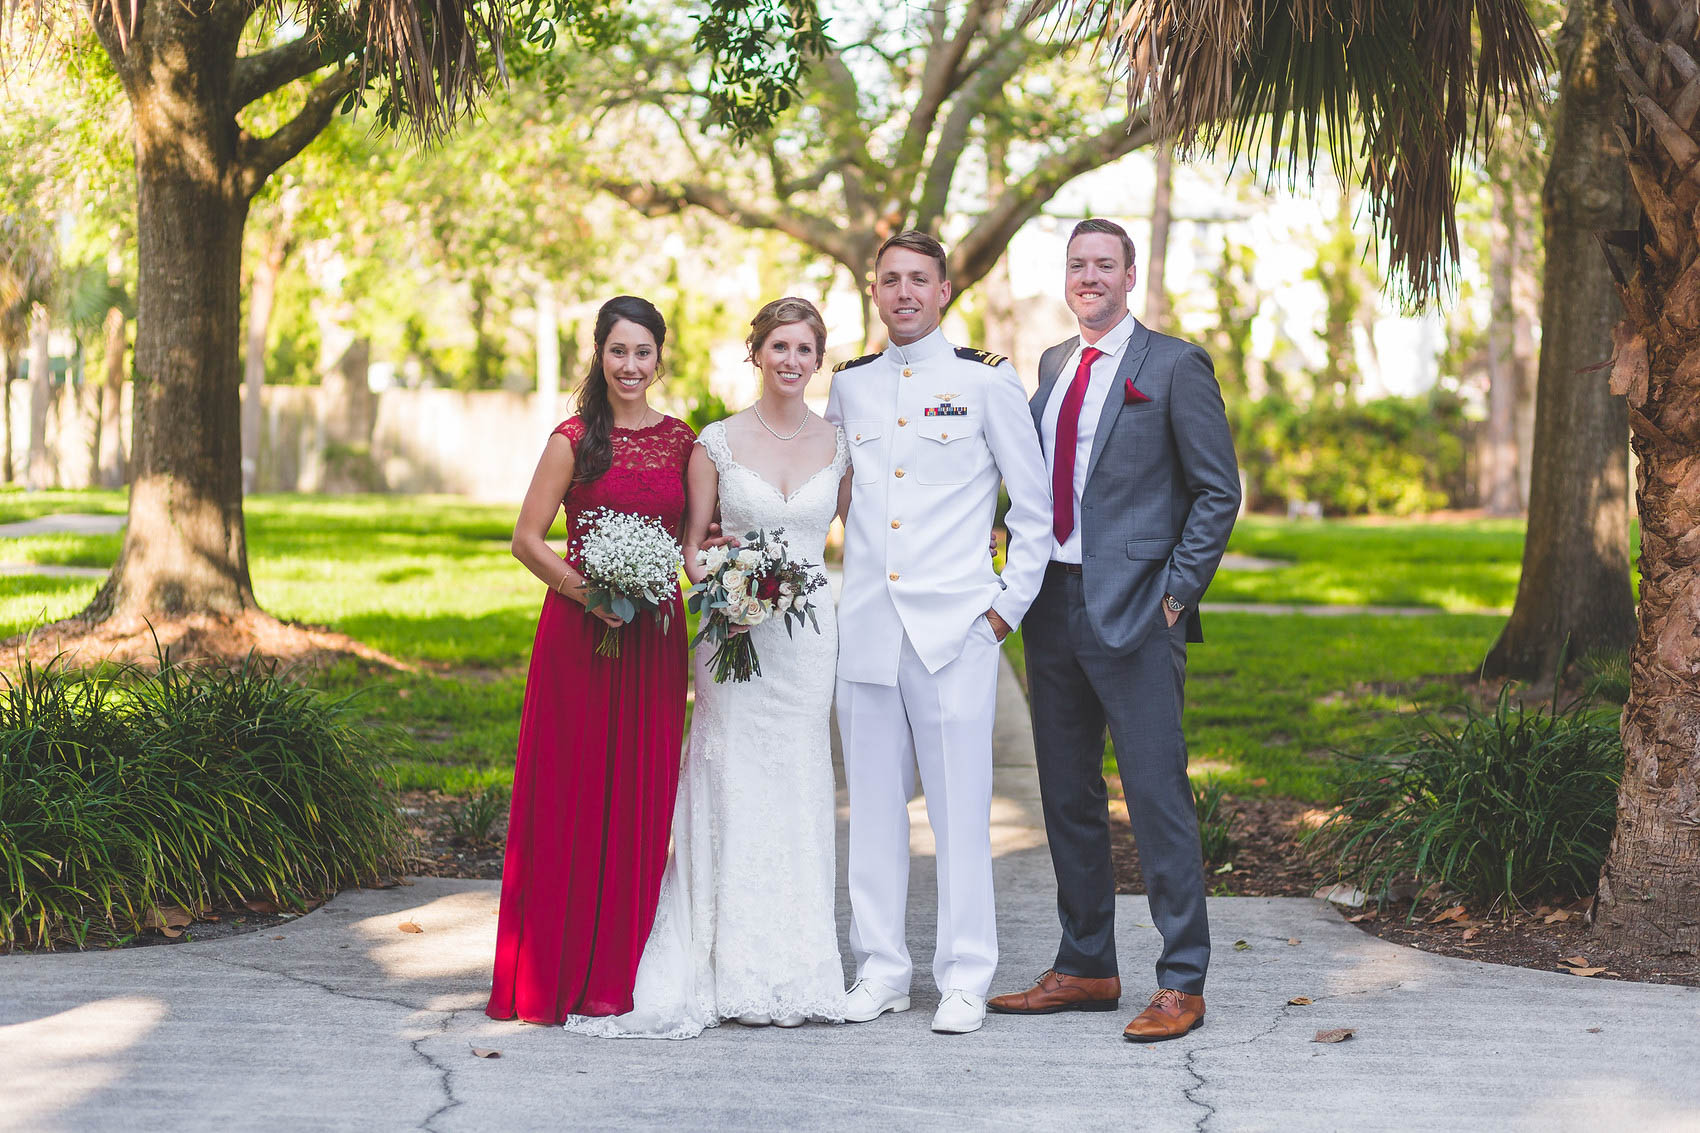 Adam-Szrmack-Bowing-the-white-room-st-augustine-wedding-photographer-66.jpg